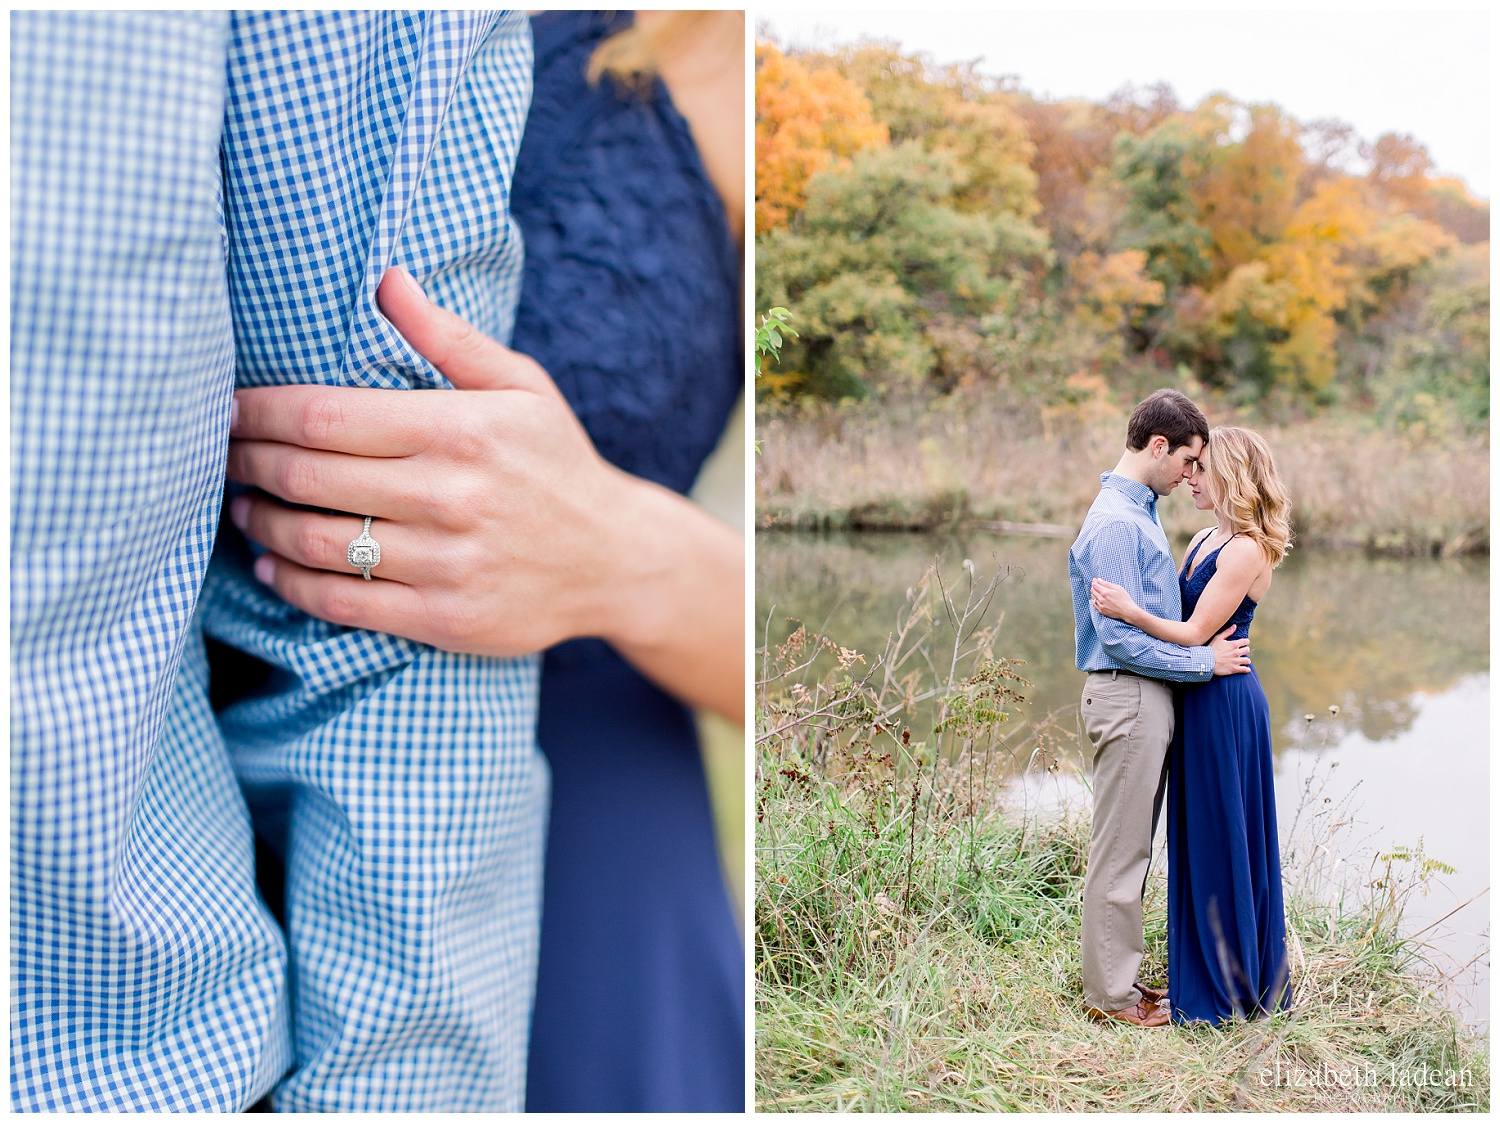 Colorful-Fall-Engagement-Photos-in-KC-C+B-2018-elizabeth-ladean-photography-photo_1805.jpg